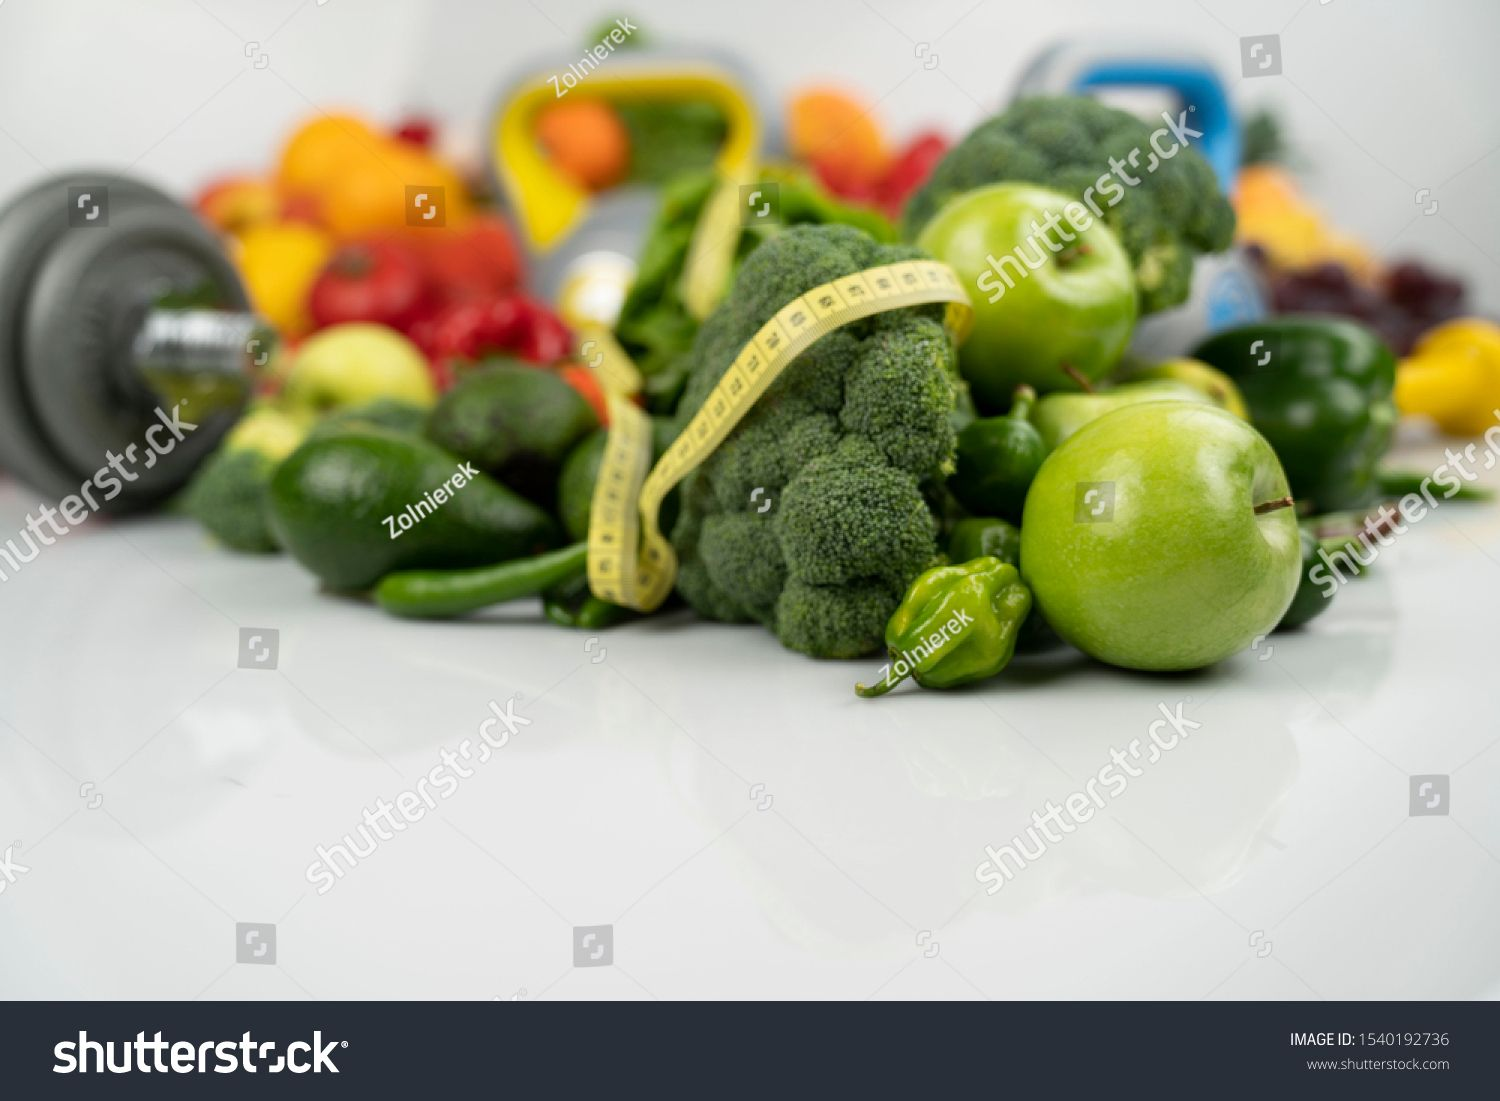 Vegetables, fruits and fitness equipment composition. Slimming concept. #Ad , #Aff, #fitness#fruits#...